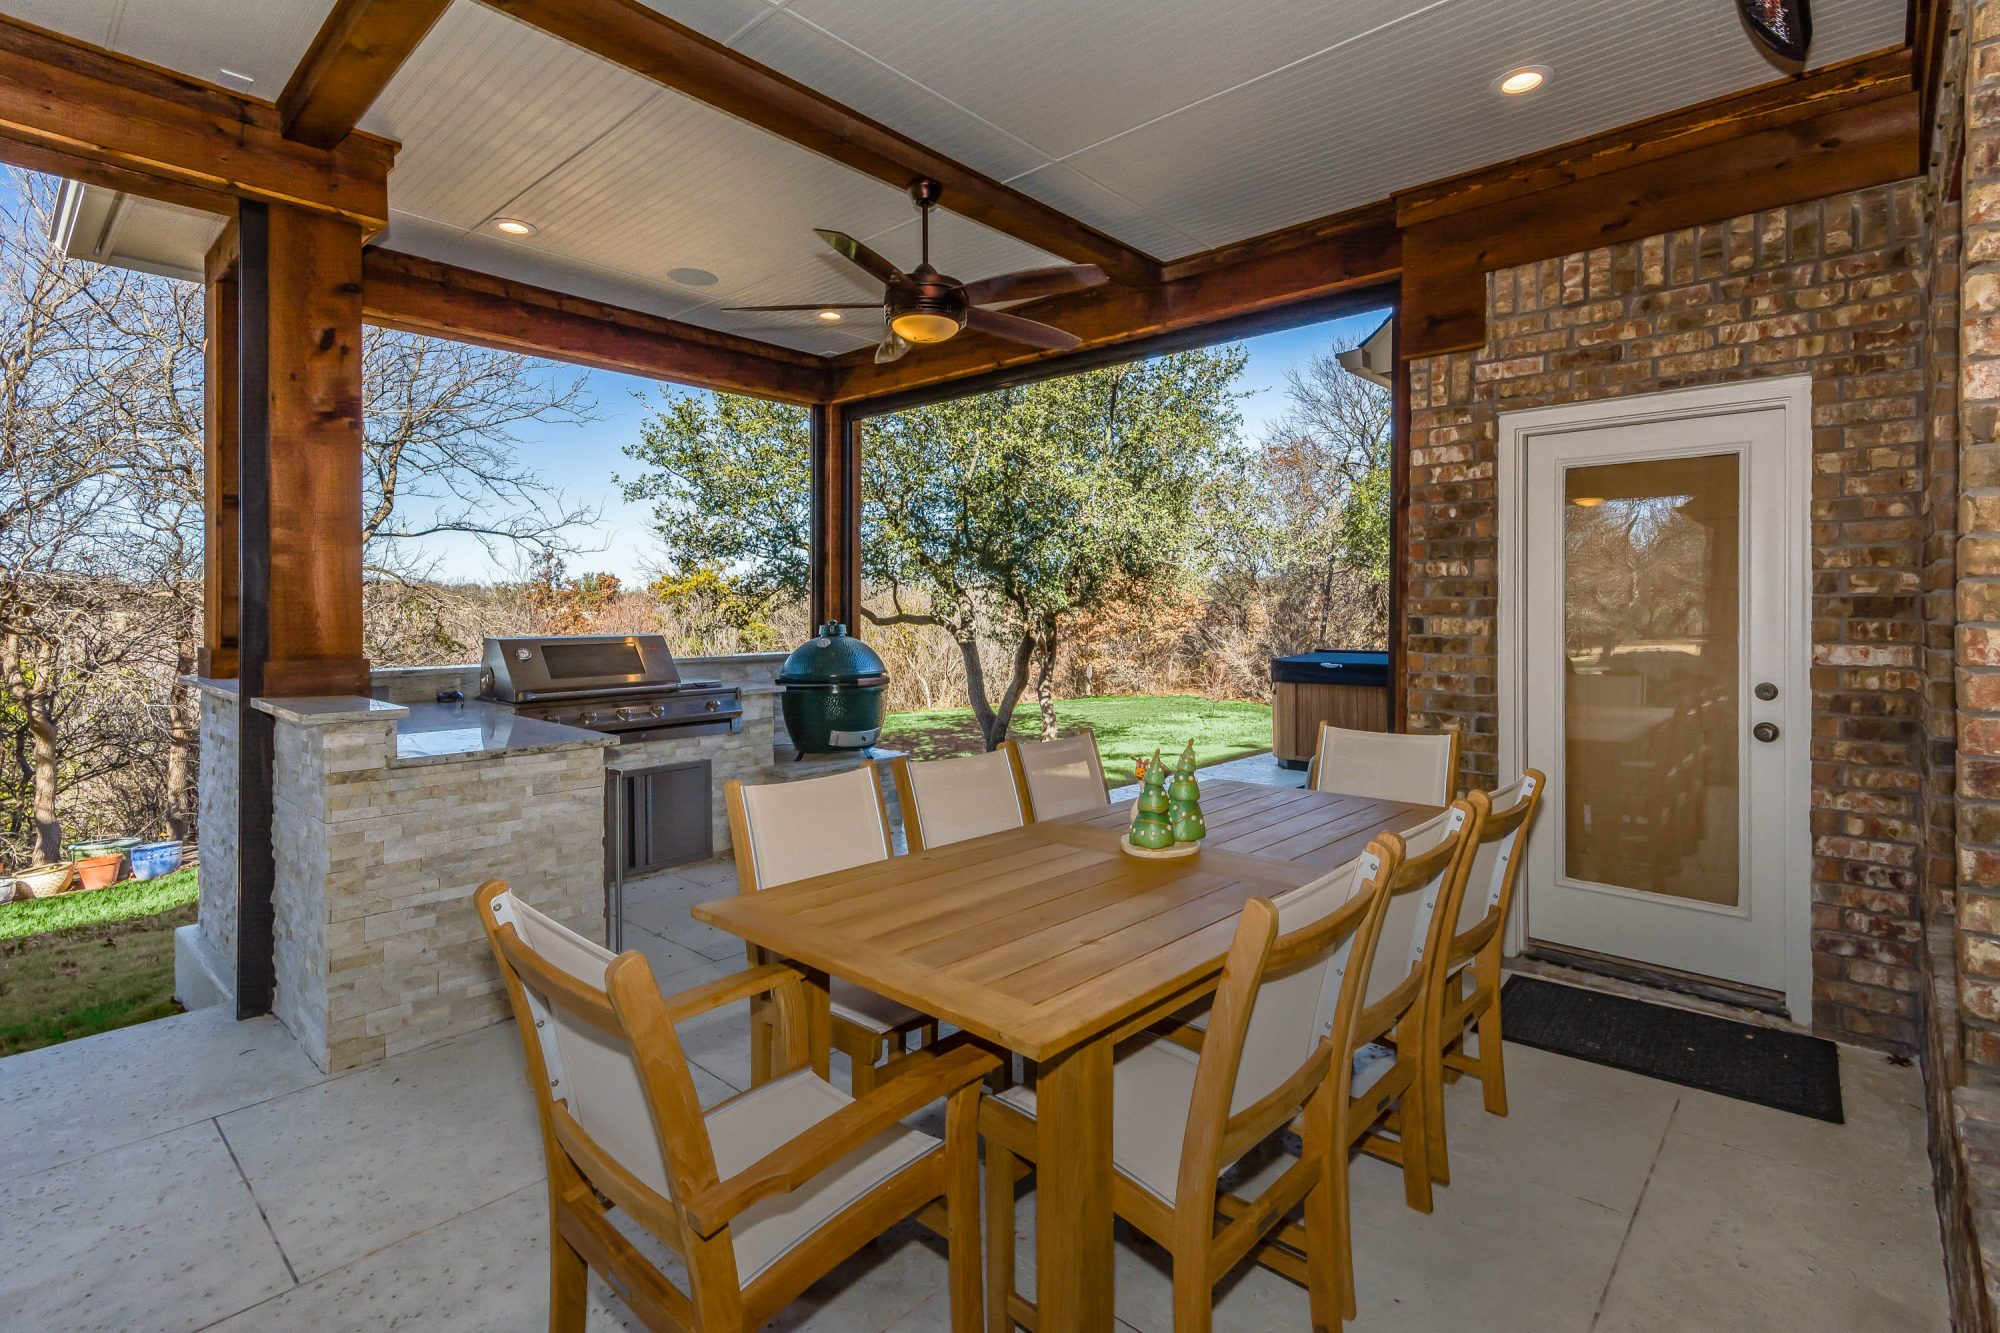 Outdoor kitchen and dining area created by the patio designers at Compass Outdoor Design